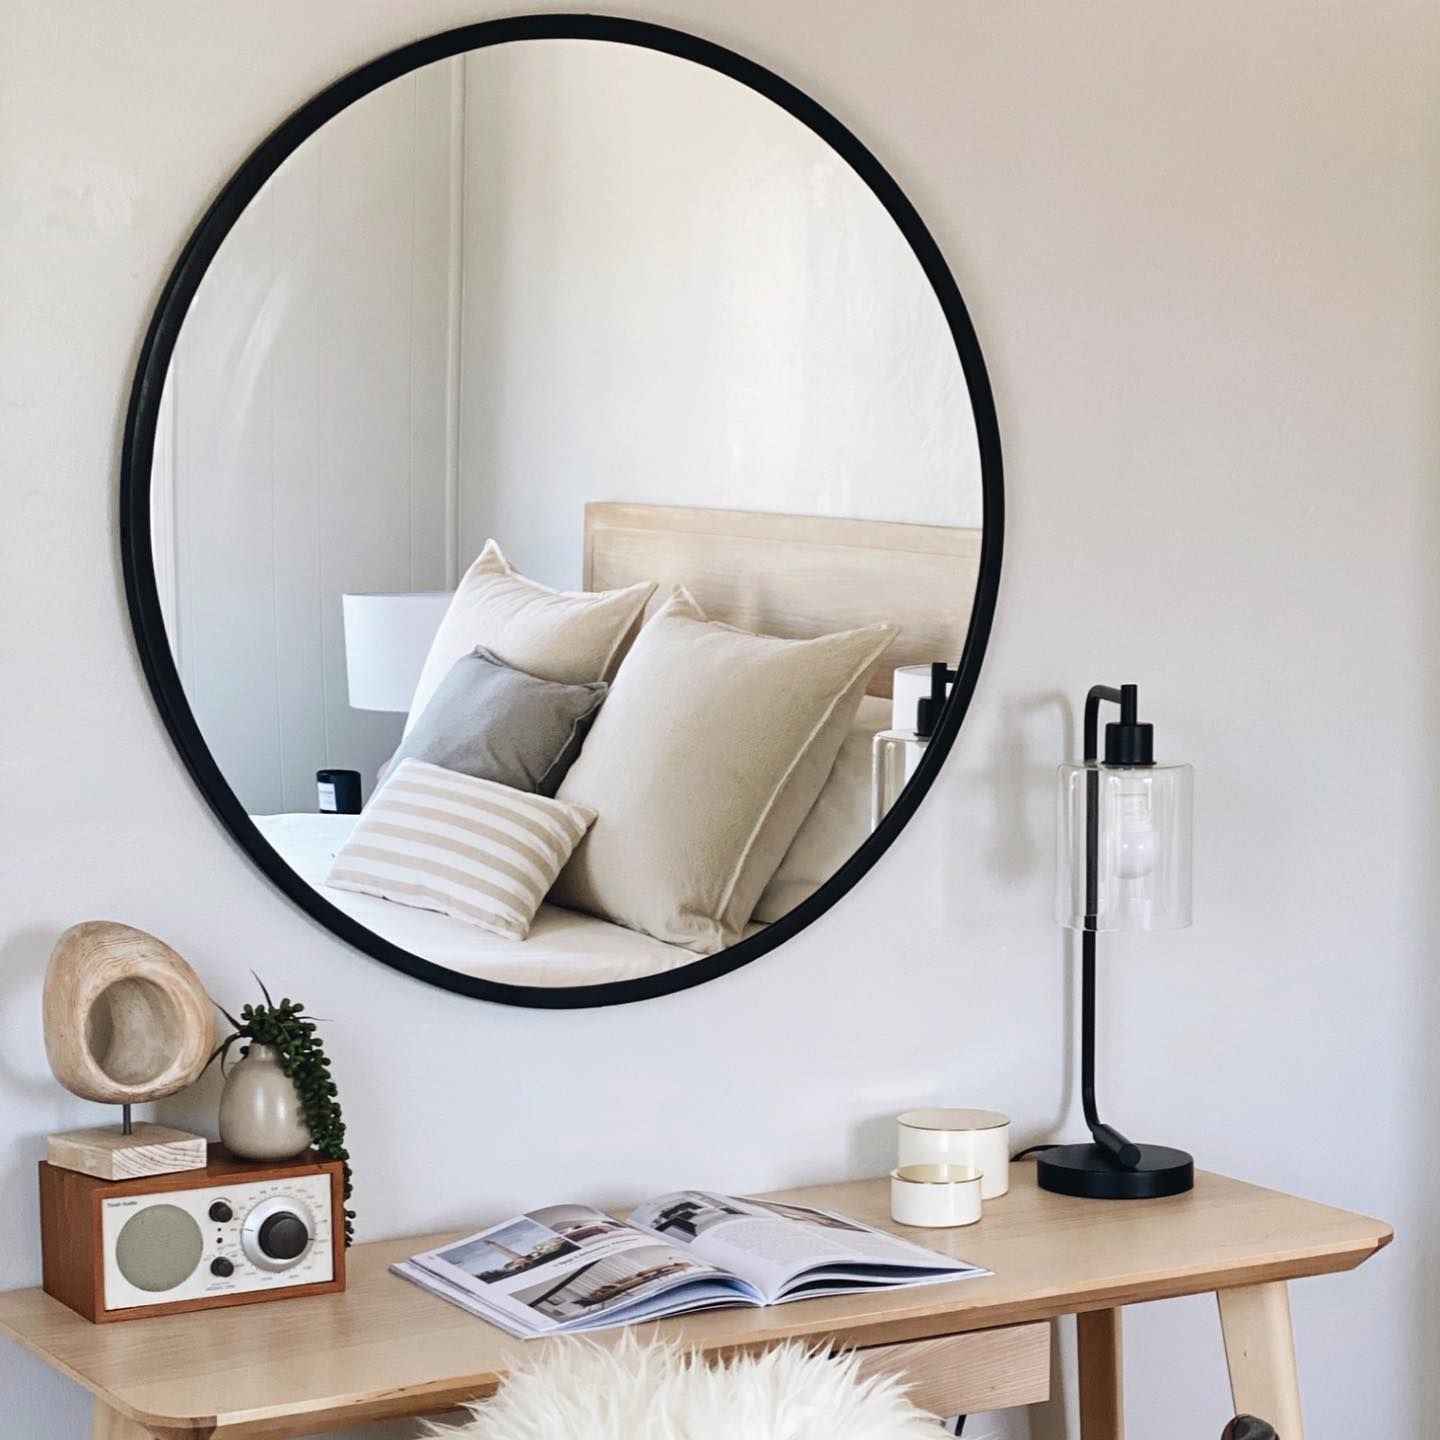 Office moments from our recent stage ✨✨ Never get tired of neutral Scandinavian-inspired simplicity 🖤🤍 #scandinavianstyle #homestylist #photoshoot #homestaging #staged #virtualstylist #interiorstylist #palomahomestyles #homestylist #vacationrentalstylist #airbnb #palomahomestaging #palomahomestyling #stage #oakland #berkeley #eastbaystaging #alotofhashtags #bayarearealestate #interiordesign #interiorstyling #interiors #realestate #eastbayrealestate